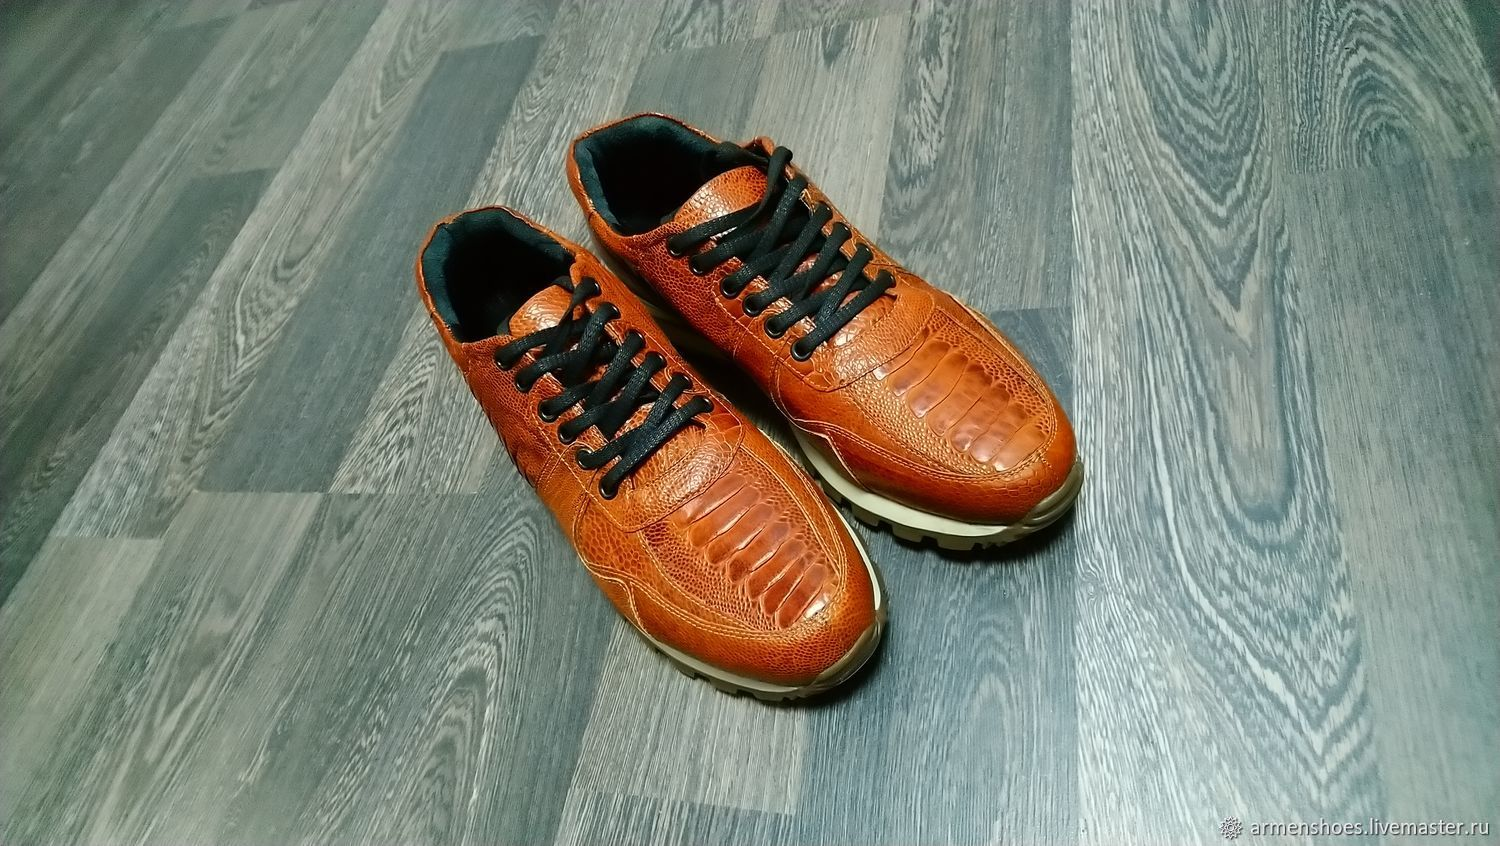 Ostrich calf leather sneakers in light brown, Sneakers, Tosno,  Фото №1